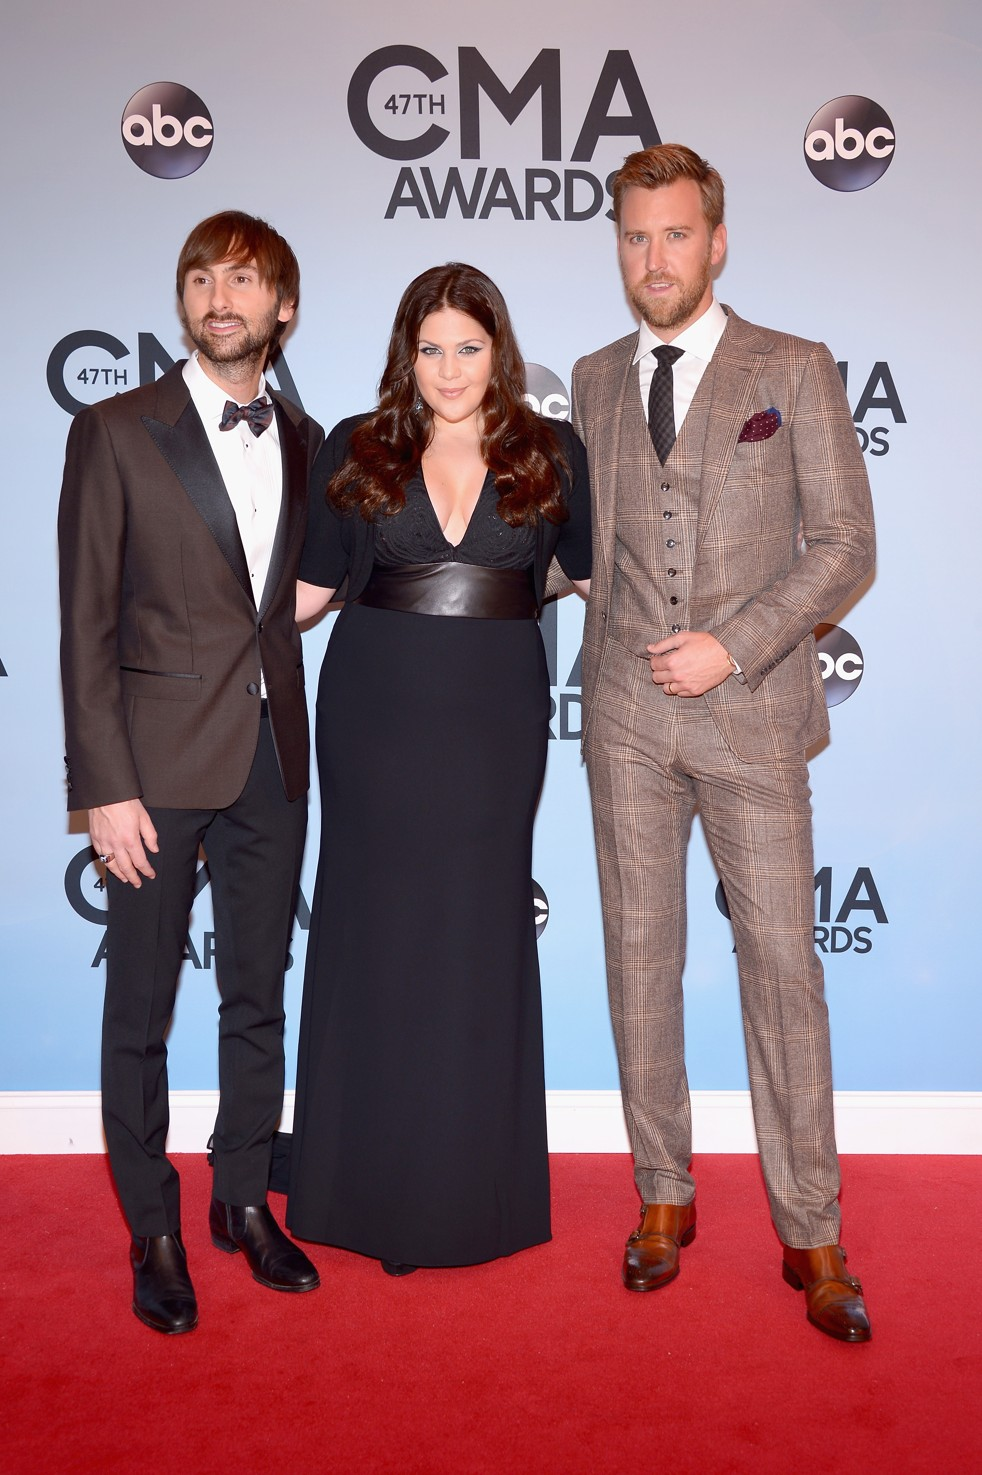 Dave Haywood, Hillary Scott and Charles Kelley of Lady Antebellum. (Photo by Michael Loccisano/Getty Images)